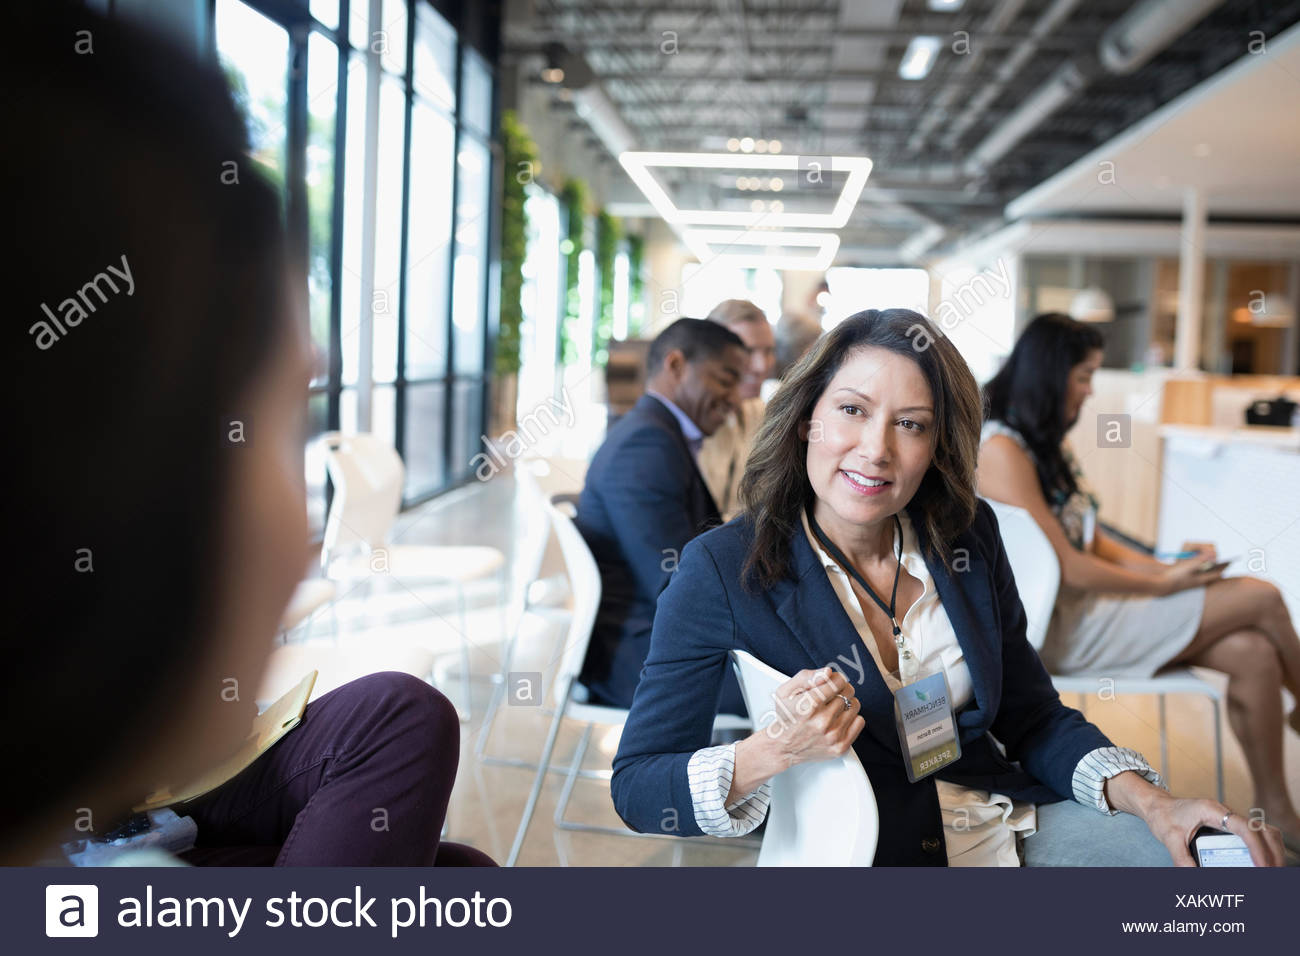 Smiling Latina businesswoman talking to colleague in conference audience - Stock Image